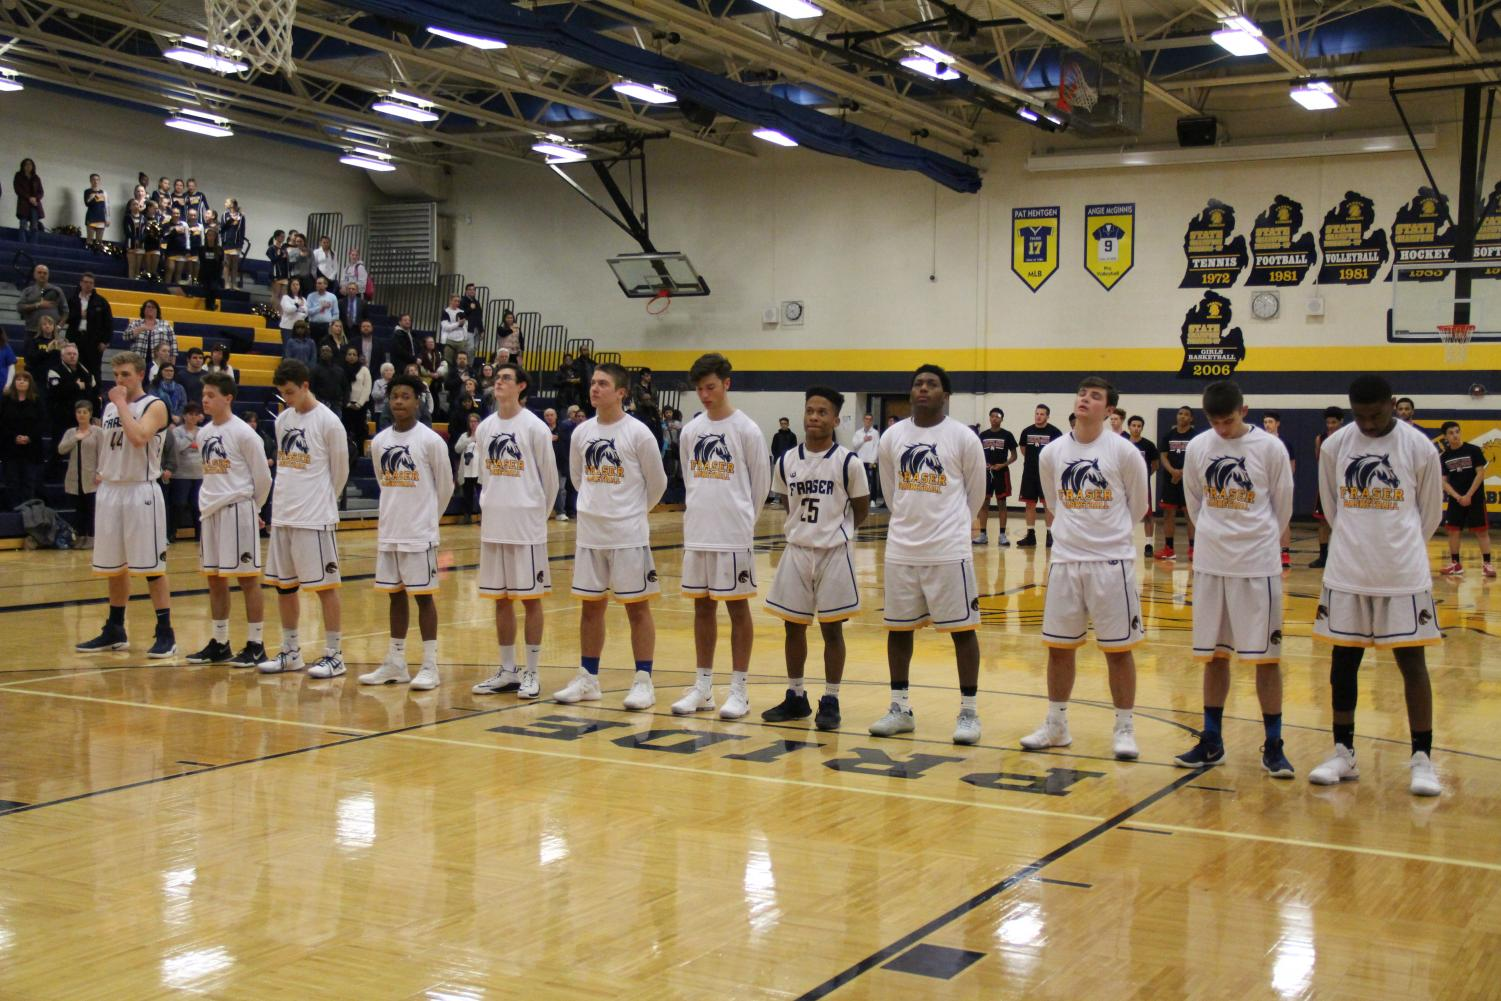 The boys basketball team stand side by side in silence during the national anthem before playing the Reds of Port Huron on January 16th, 2018